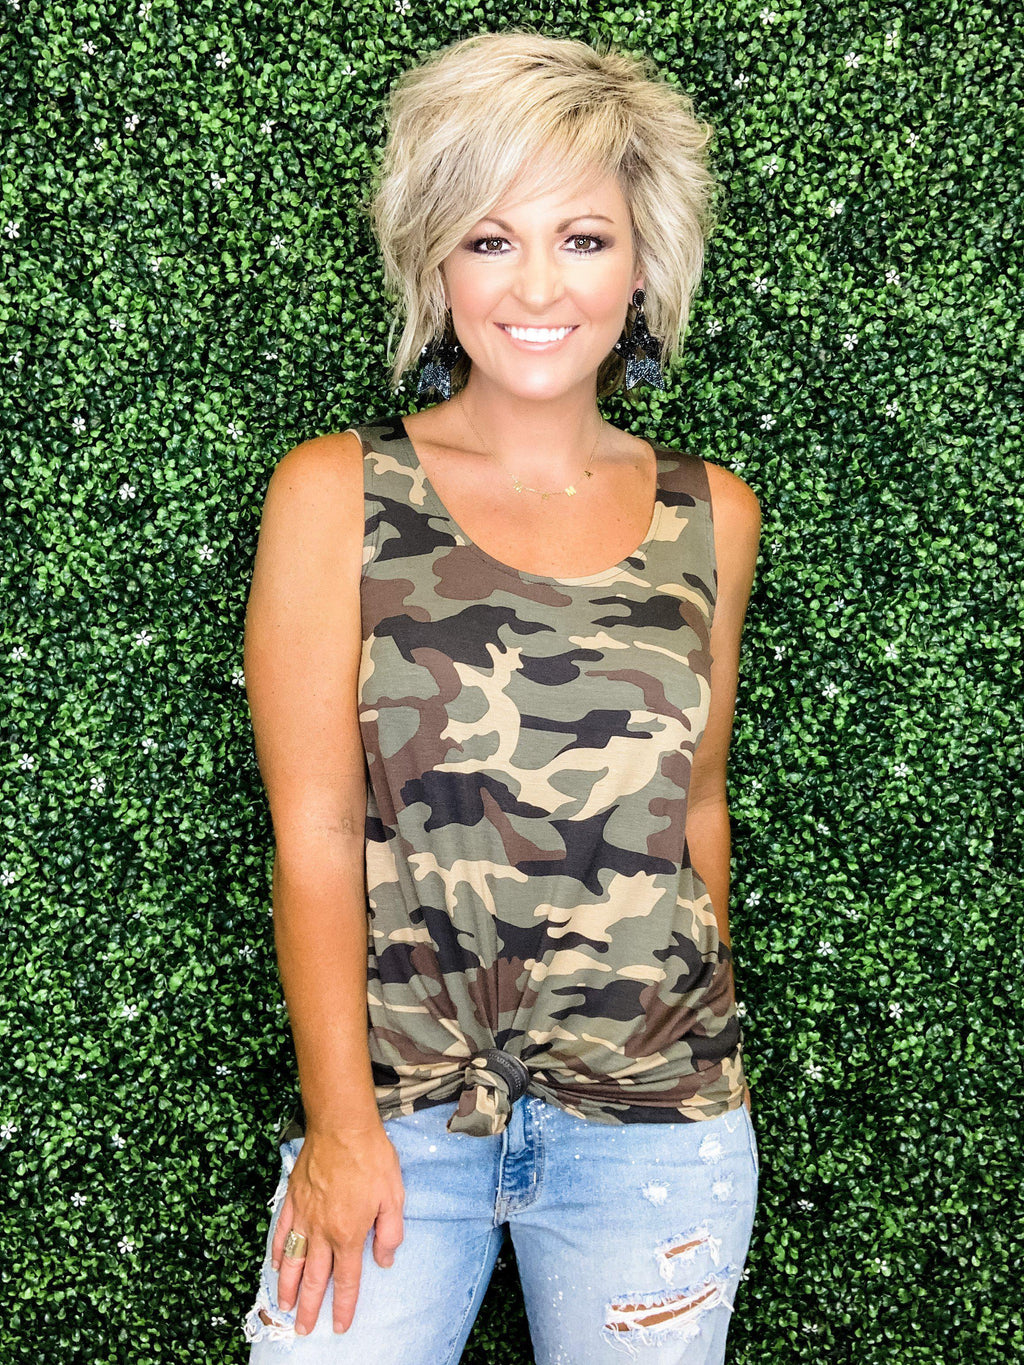 Camo Scoop Neck Tank Top - Preppy Pineapple